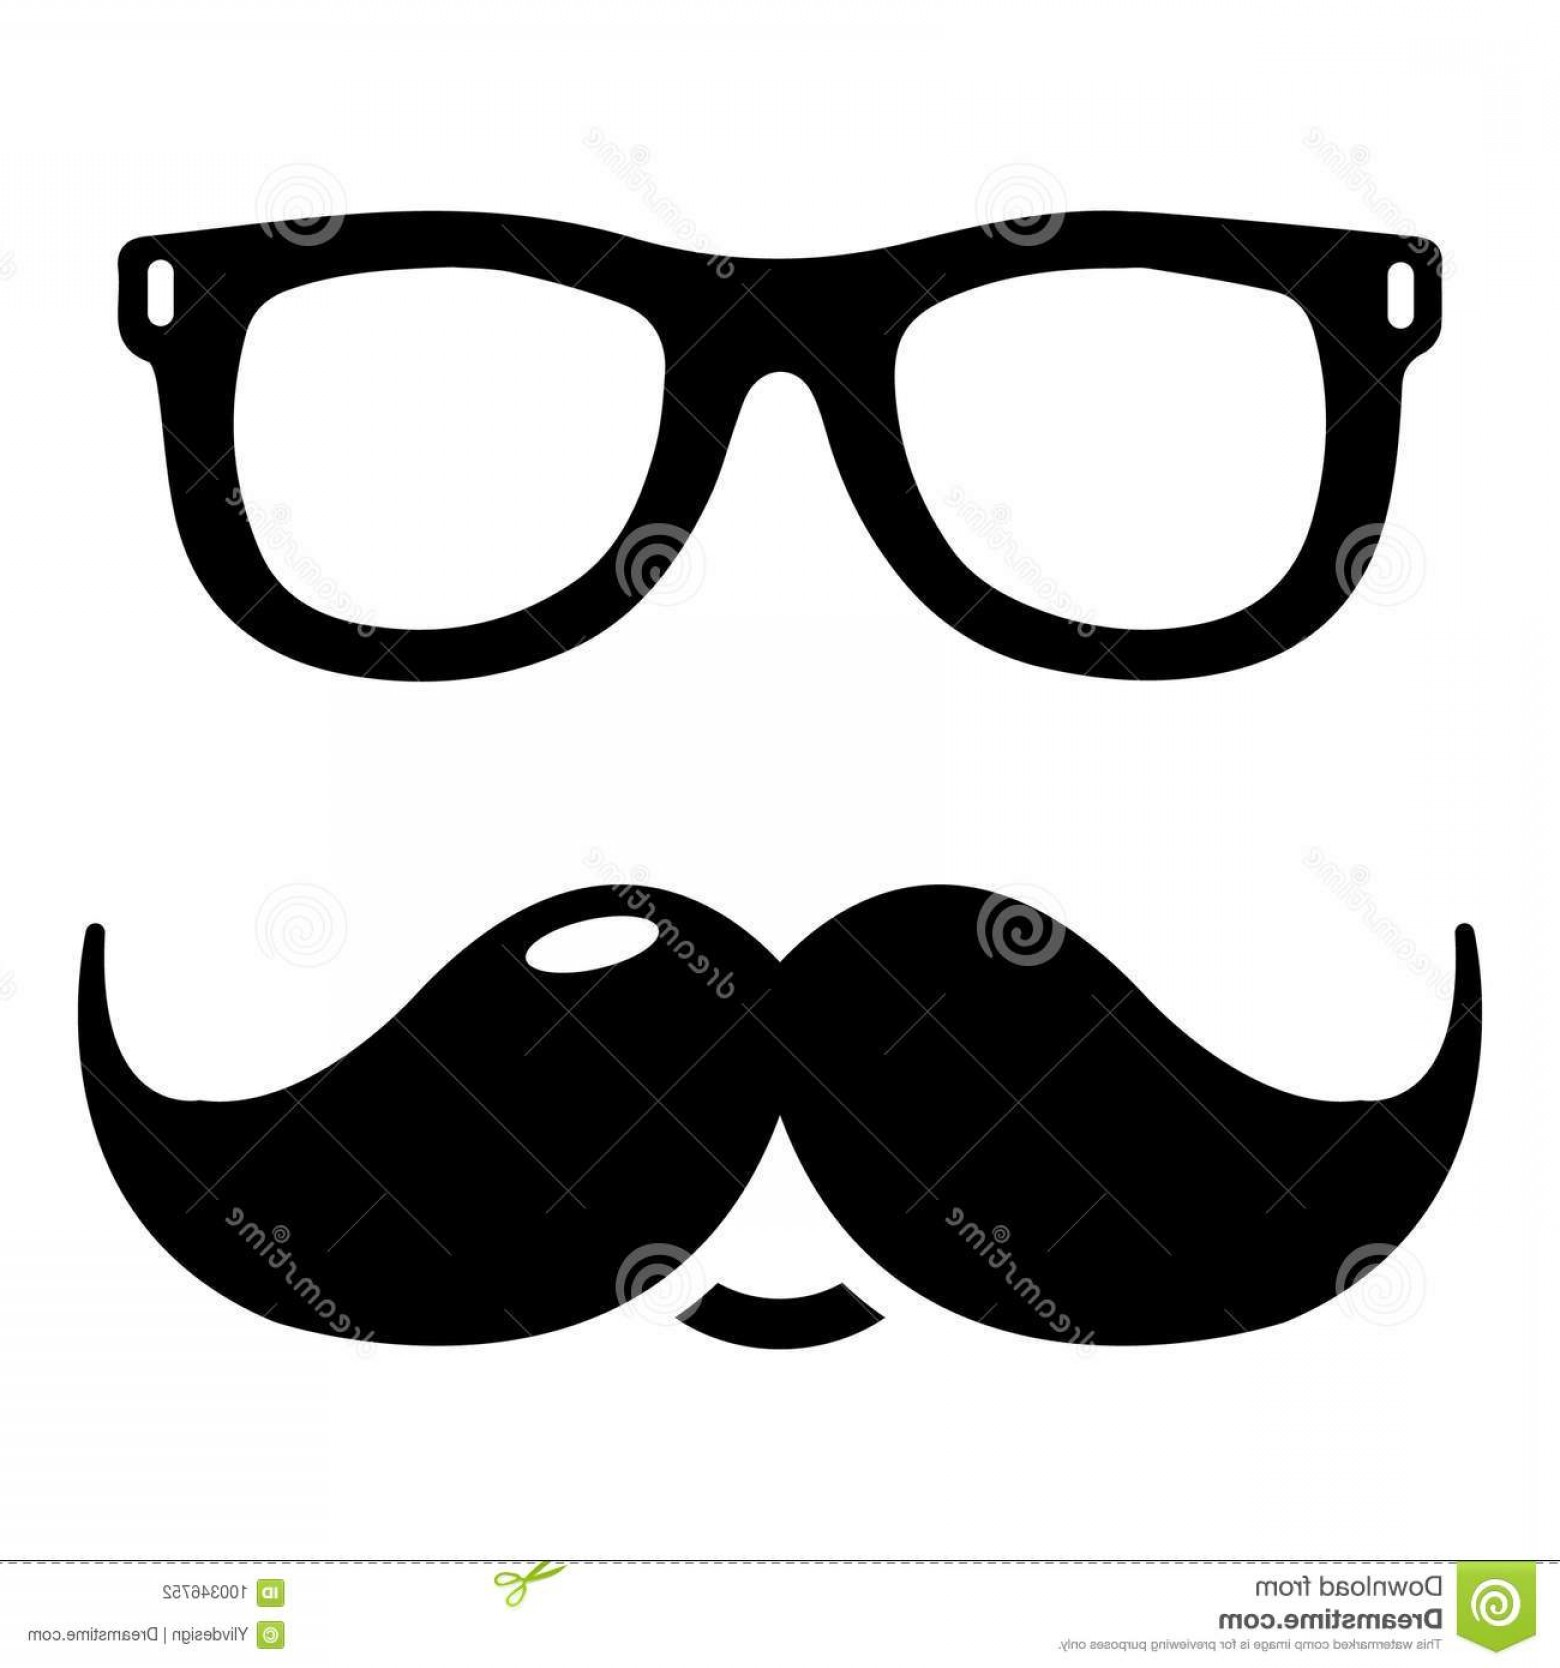 Black Sunglasses Clip Art Vector: Nerd Glasses Mustaches Icon Simple Illustration Nerd Glasses Mustaches Vector Icon Web Design Isolated White Background Image